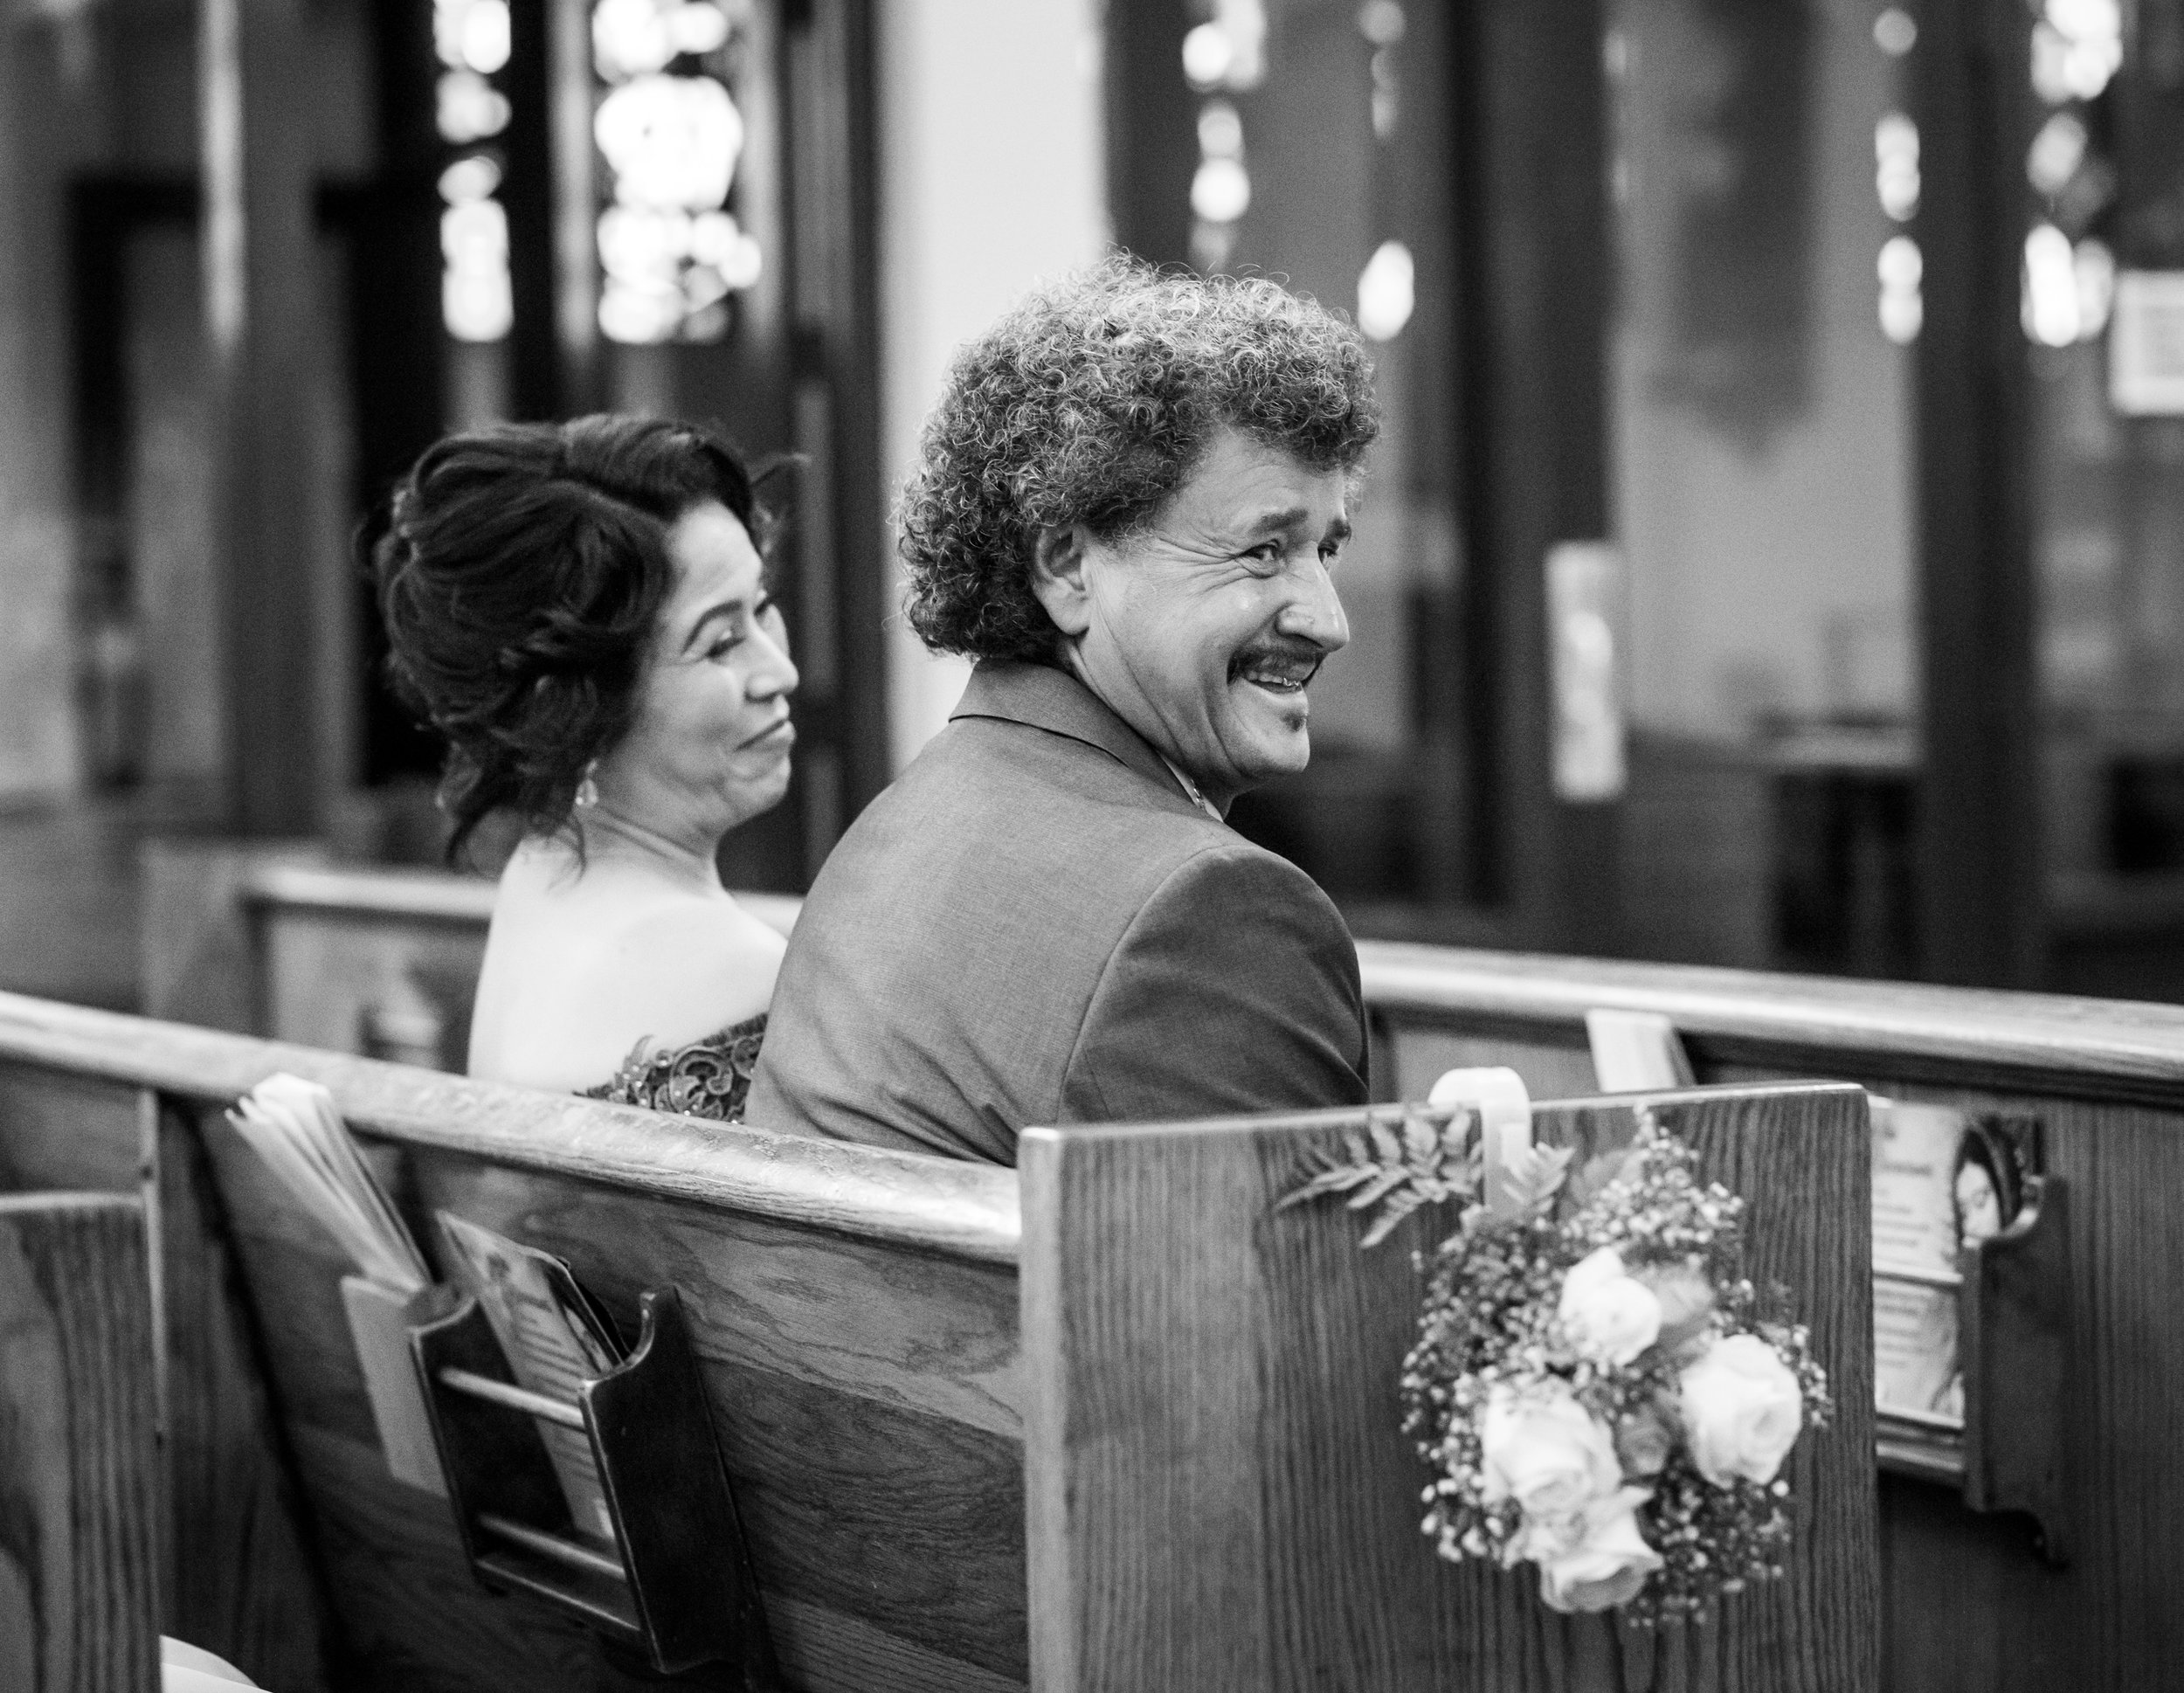 Adriana Gonzalez's parents Adolofo Gonzalez and Telma Hernandez during Adriana's quinceañera at Our Lady of Guadalupe Church in Sacramento, California